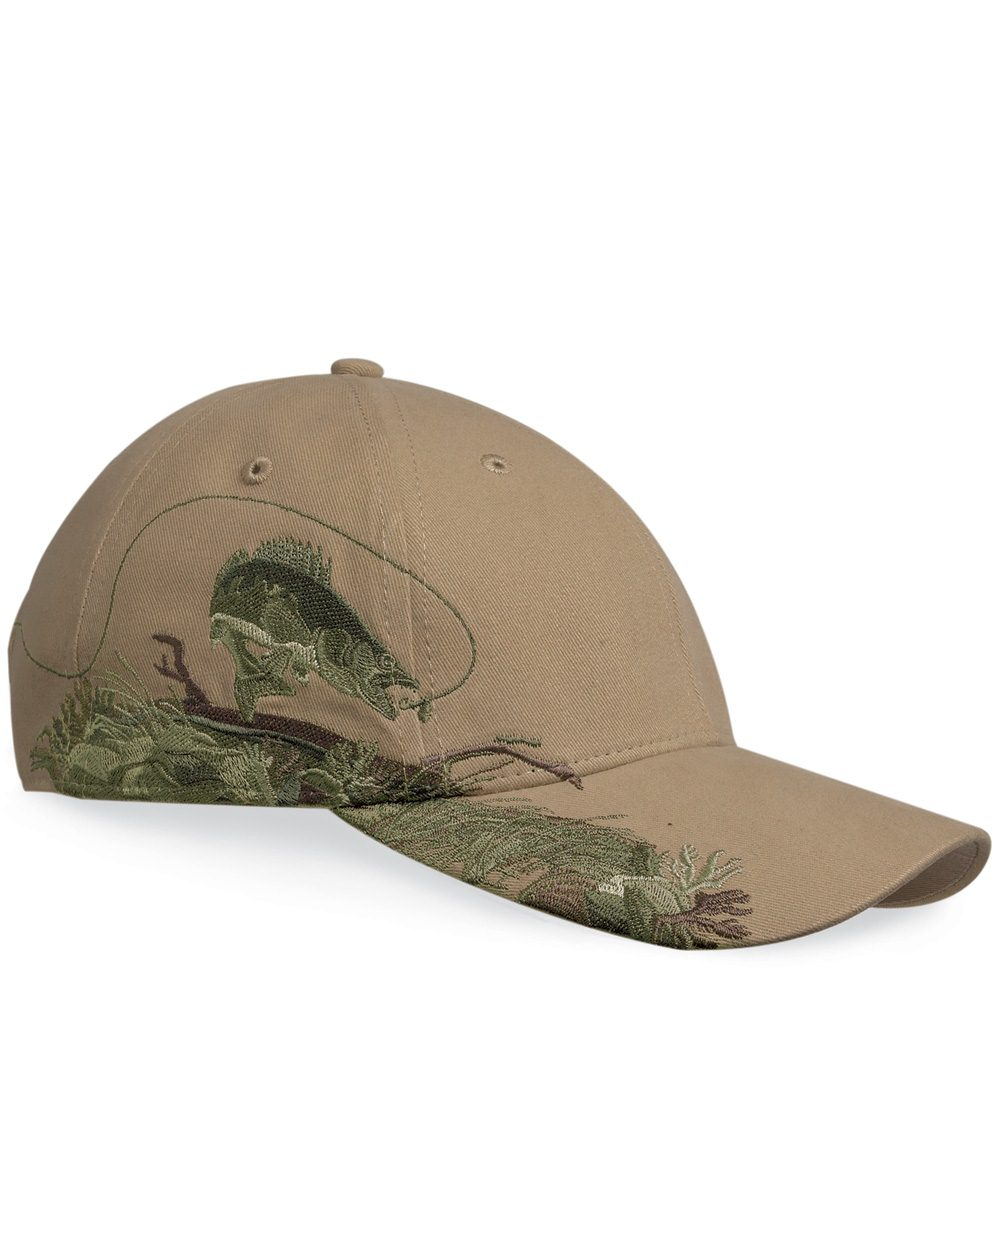 DRI DUCK Wildlife Series Walleye Cap - 3269